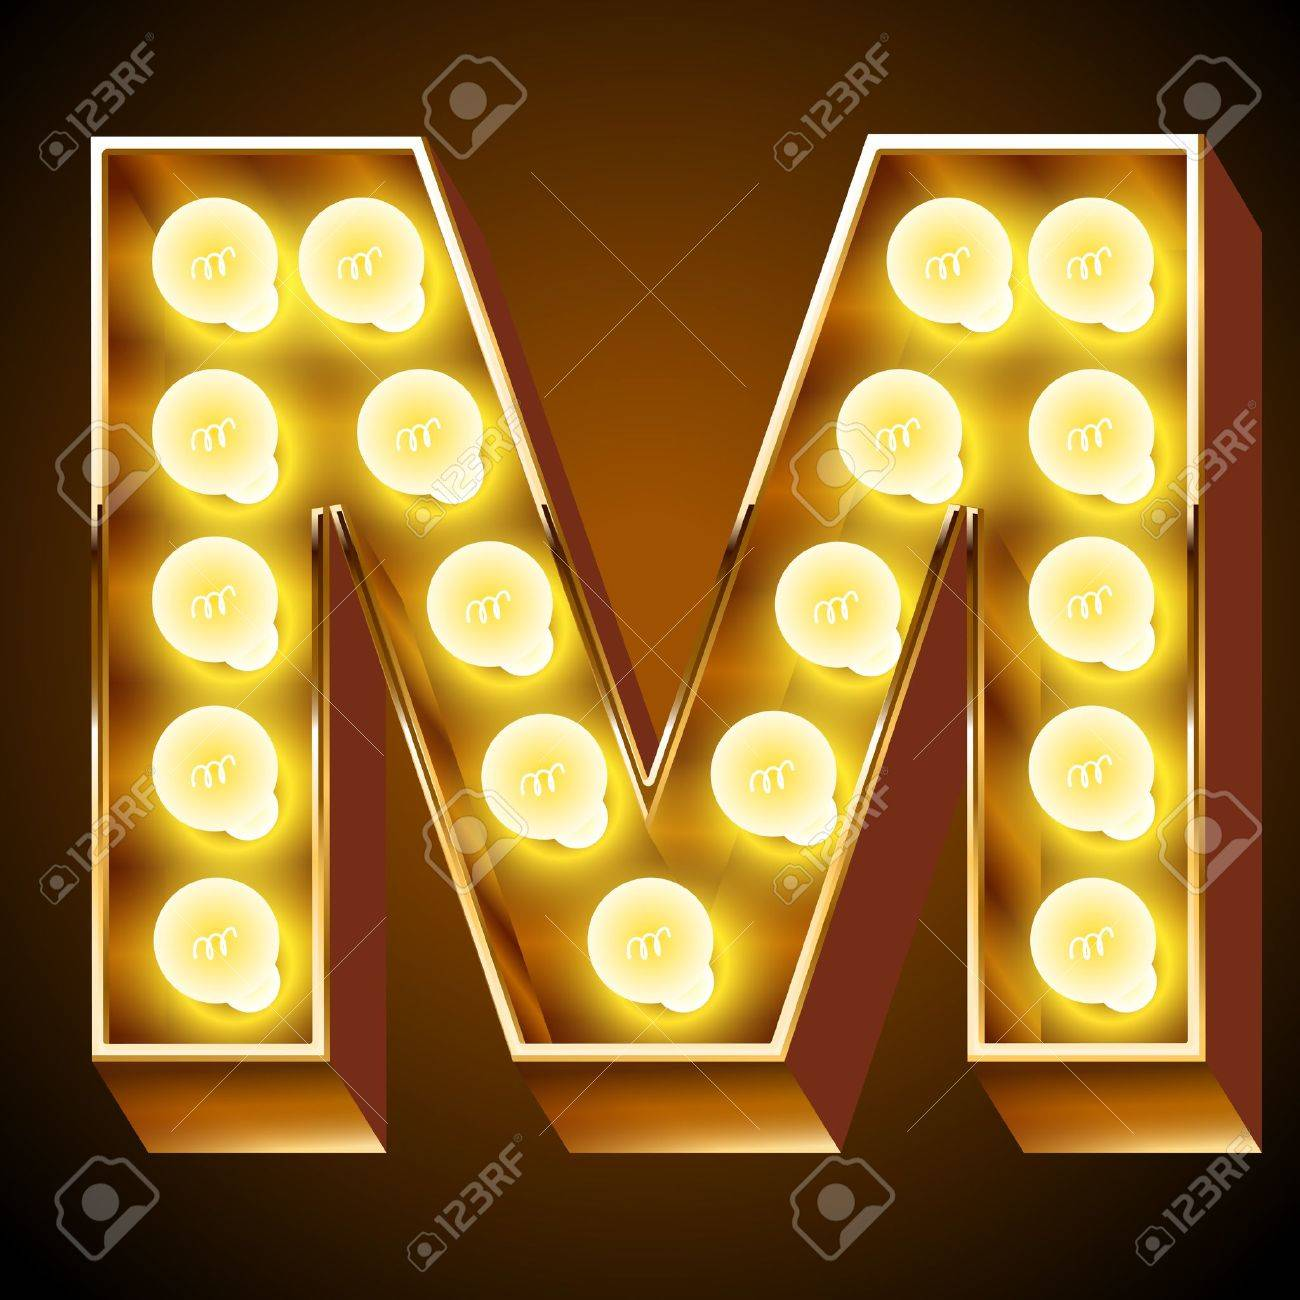 Old Lamp Alphabet For Light Board Letter M Royalty Free Cliparts ... for Old Lamp Clipart  103wja